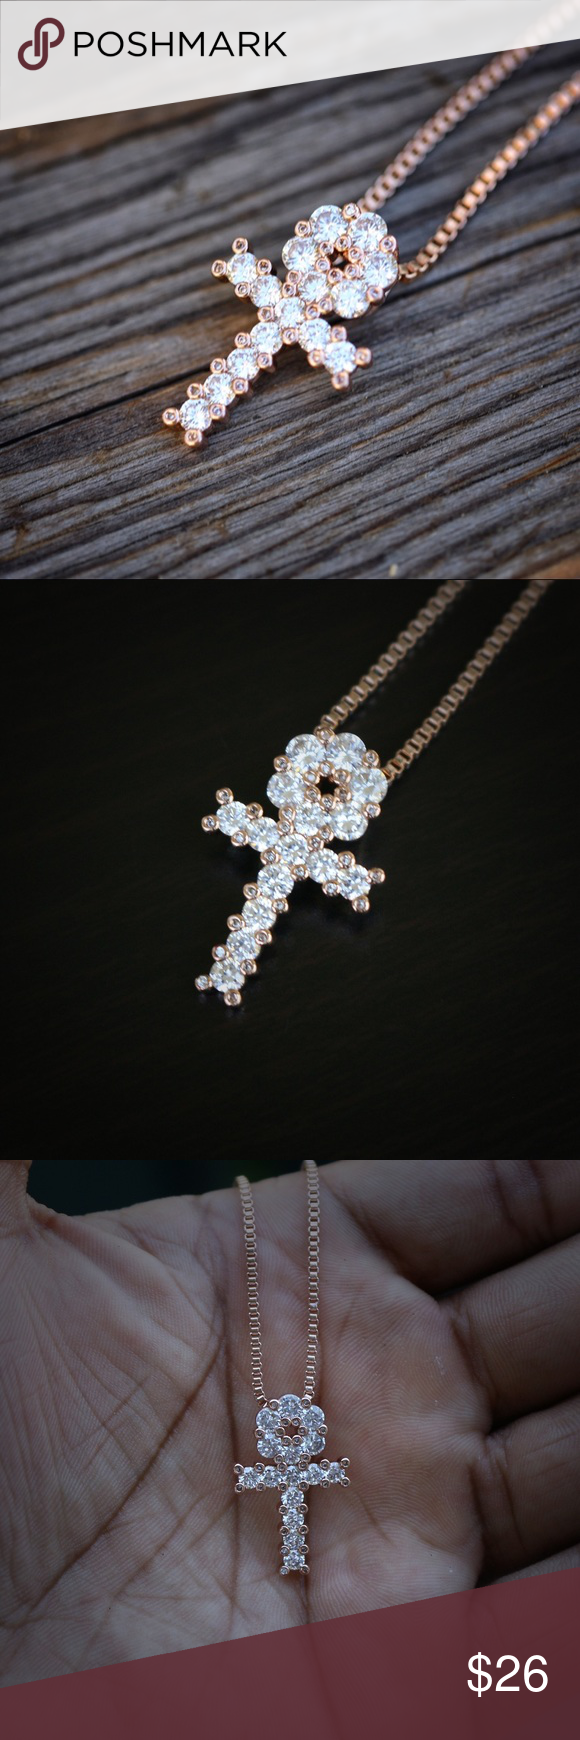 Mini Rose Gold Egyptian Ankh Cross Necklace Mini Rose Gold Egyptian Ankh Key Cross Necklace  Chain is rose gold plated over 316 stainless steel.  Pendant size is 13mm in length (mini size)  Comes with a 1.5mm width 20 inch length rose gold plated 316 stainless steel box chain. Ts Verniel Jewelry Necklaces